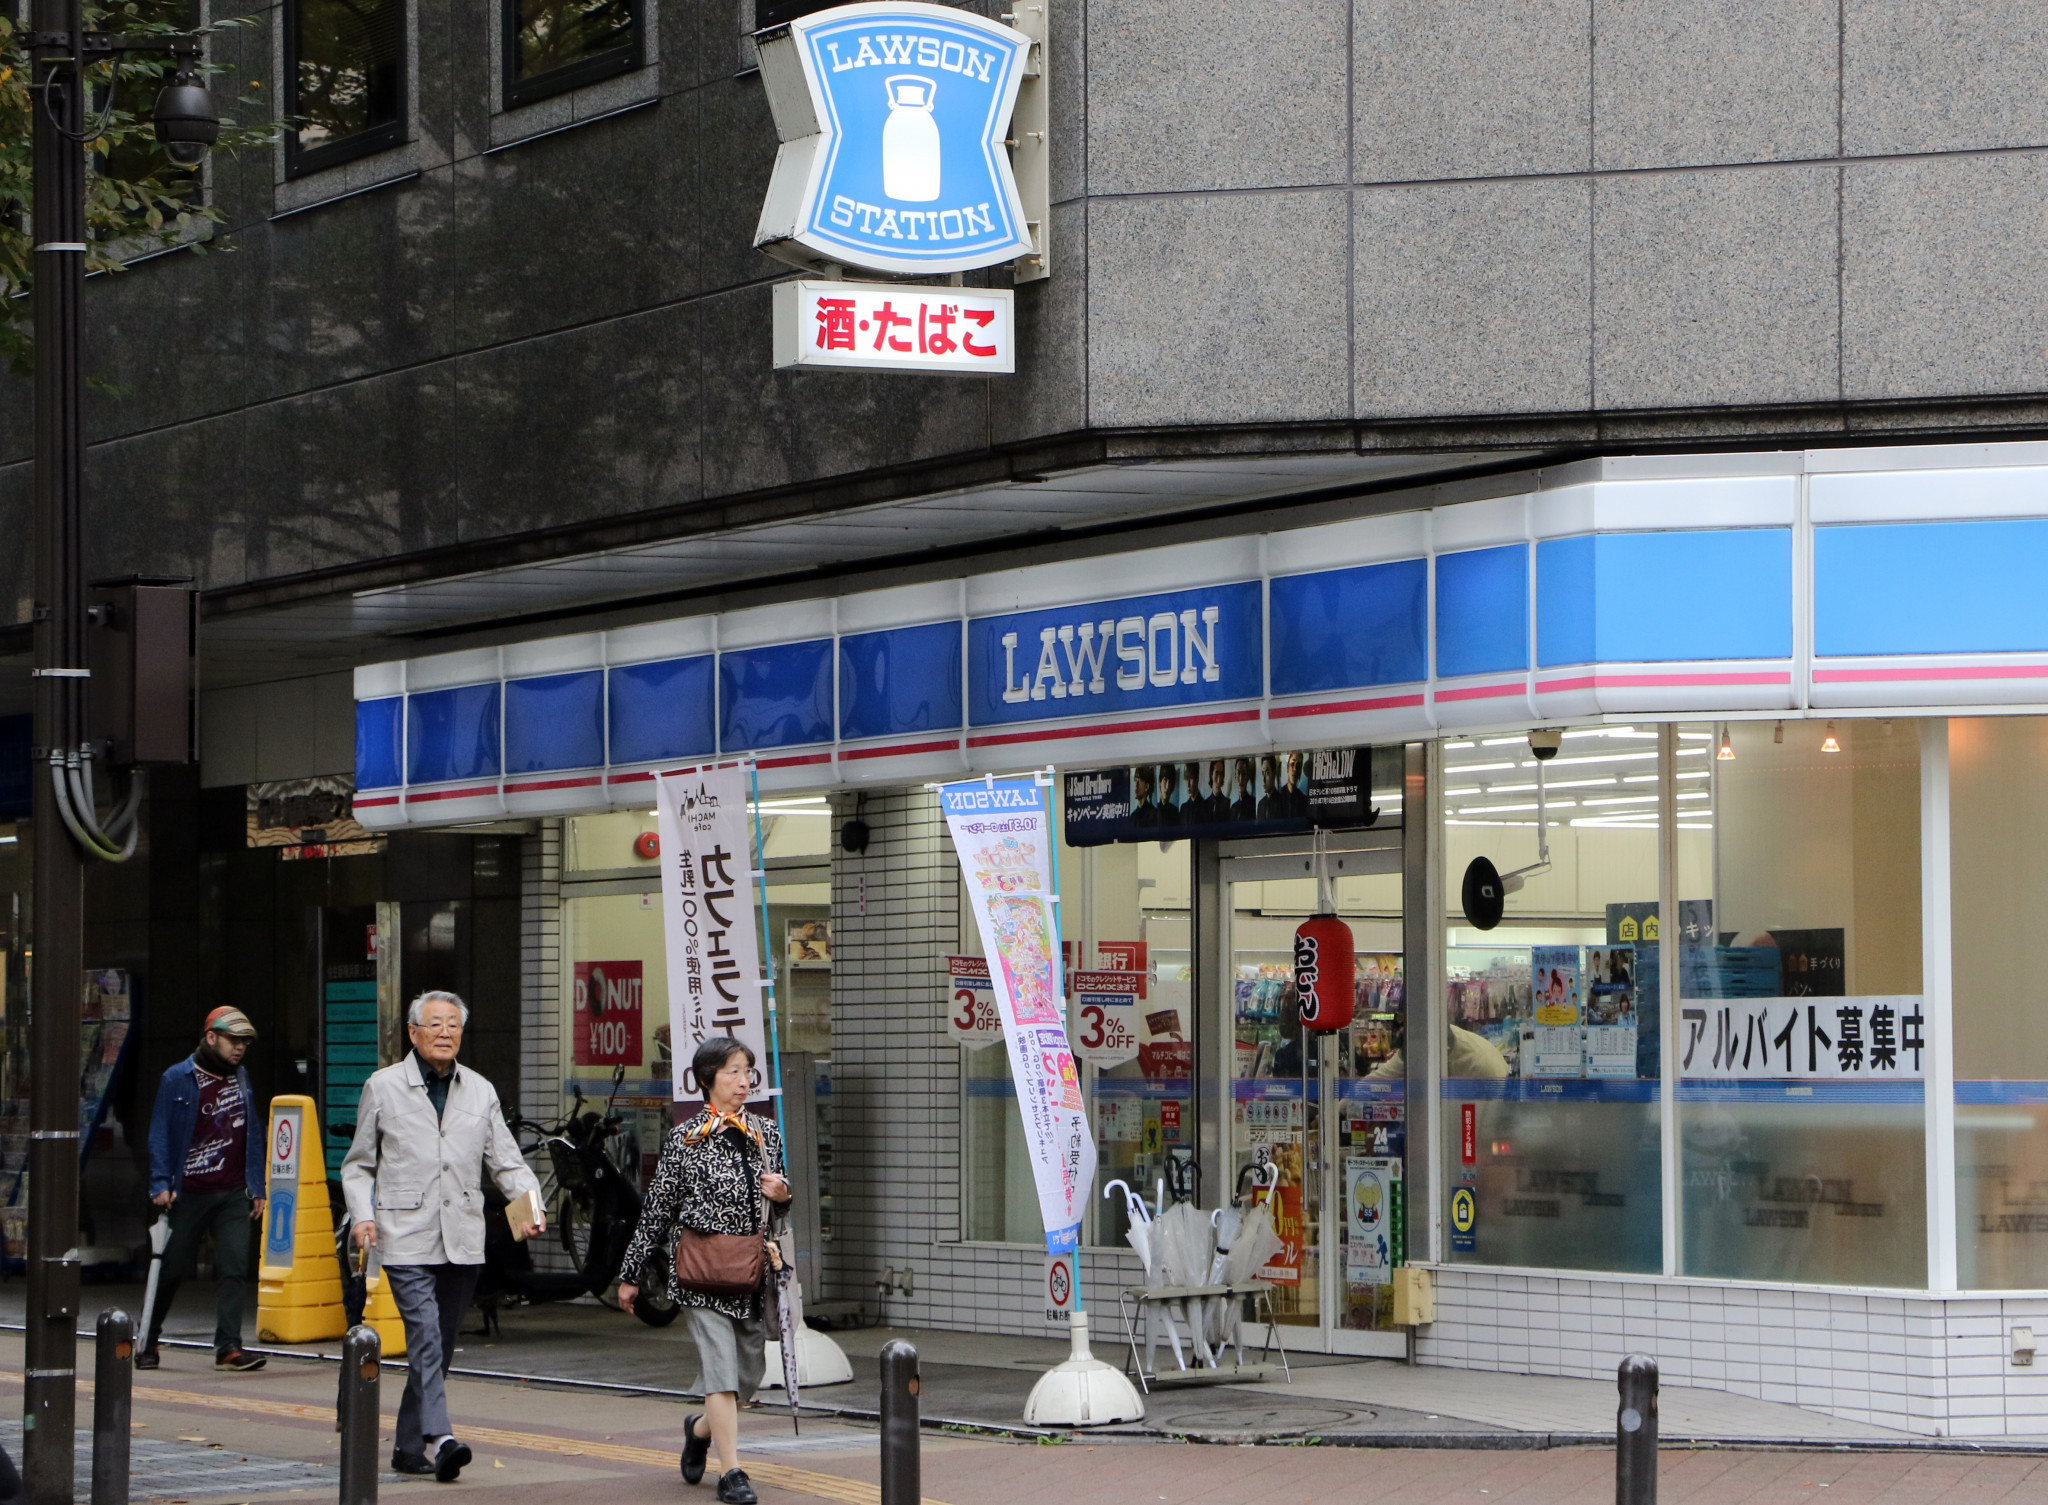 Lawson has some 14,000 stores in Japan ©Getty Images